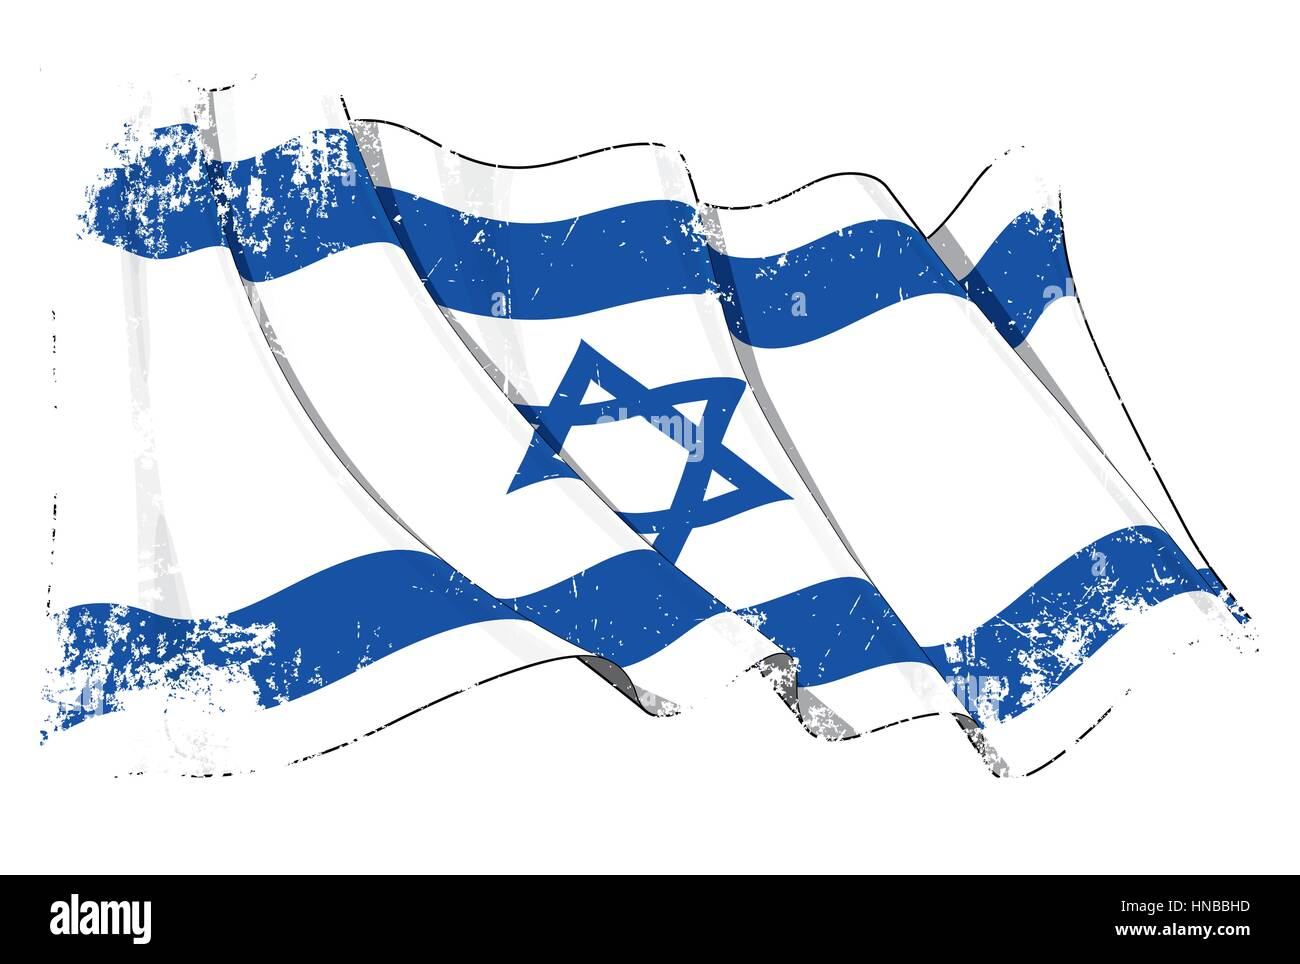 Grunge Vector Illustration of a waving Israeli flag against white background. All elements neatly organized. Texture, - Stock Image